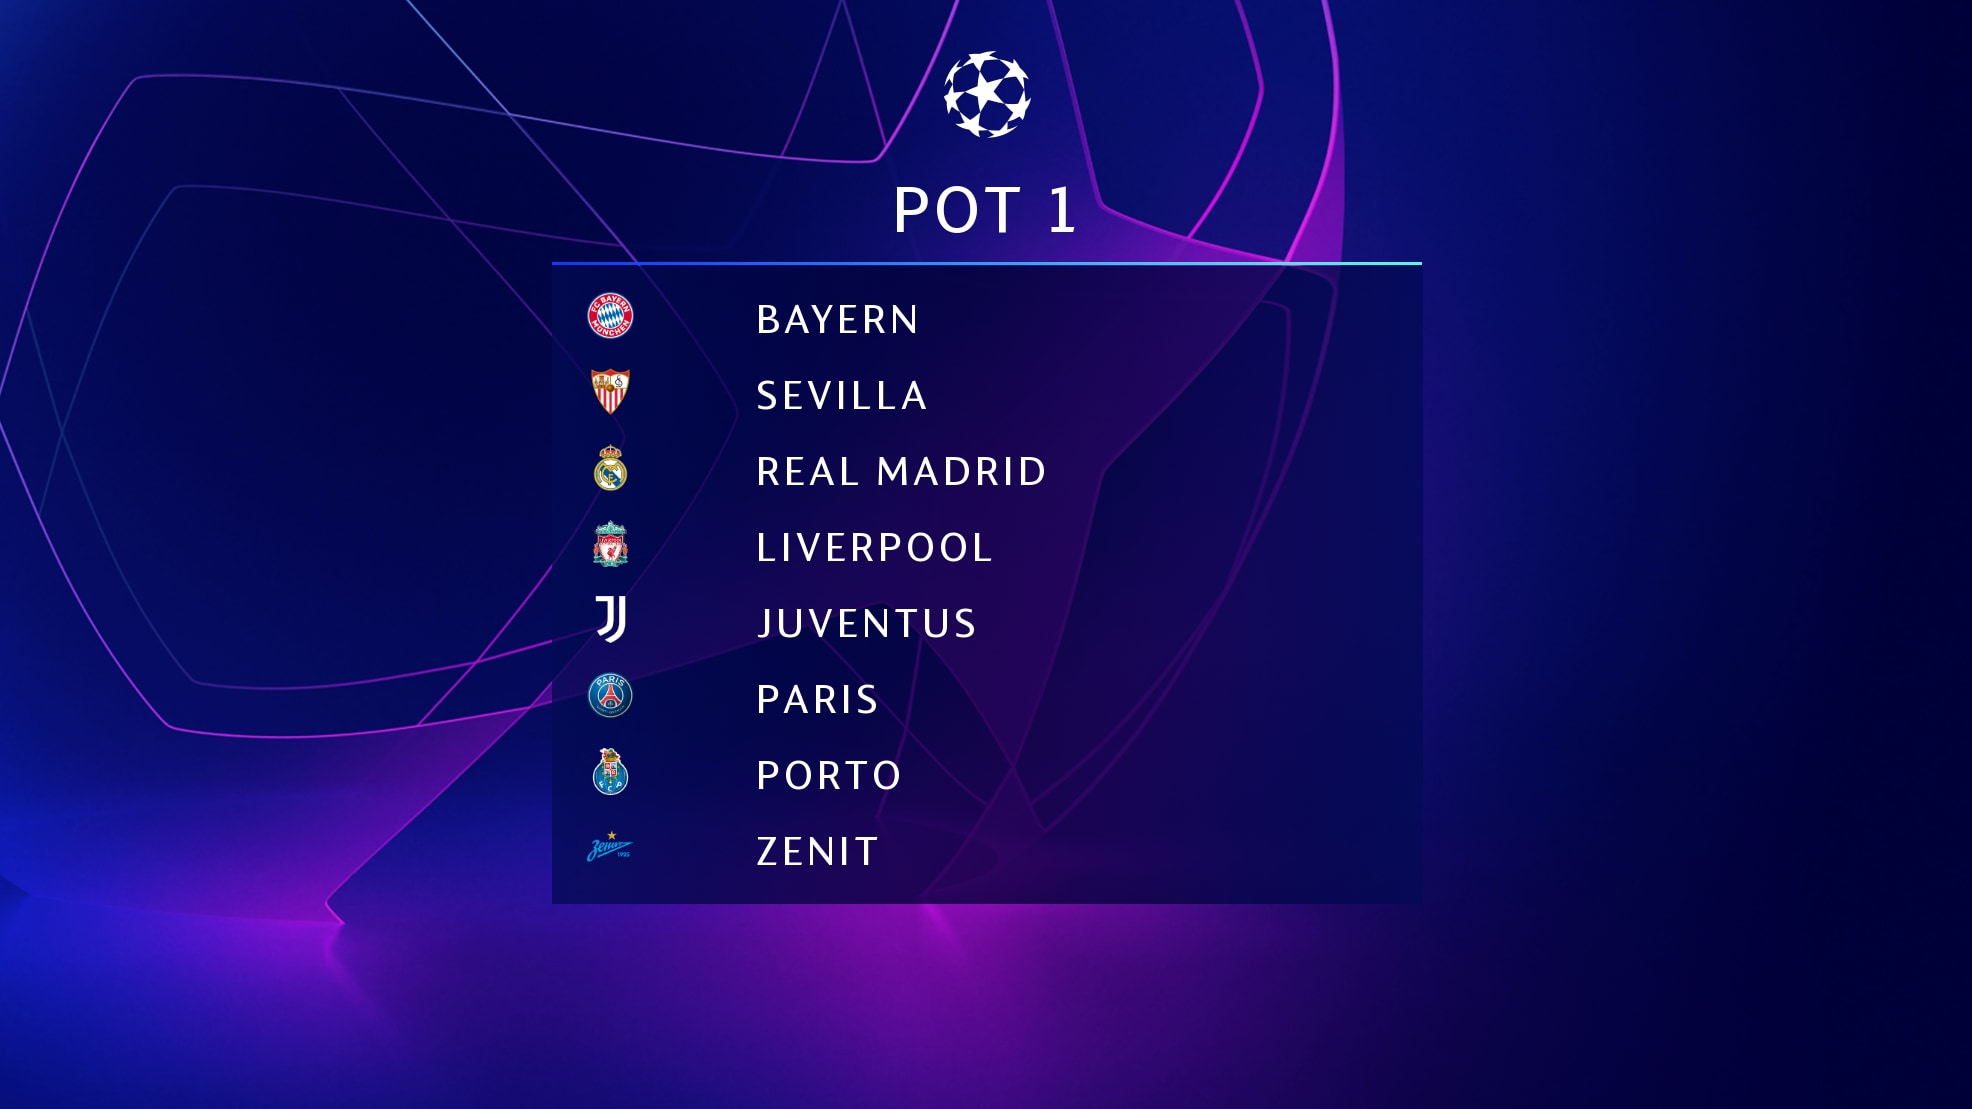 Group stage draw: Pot 1